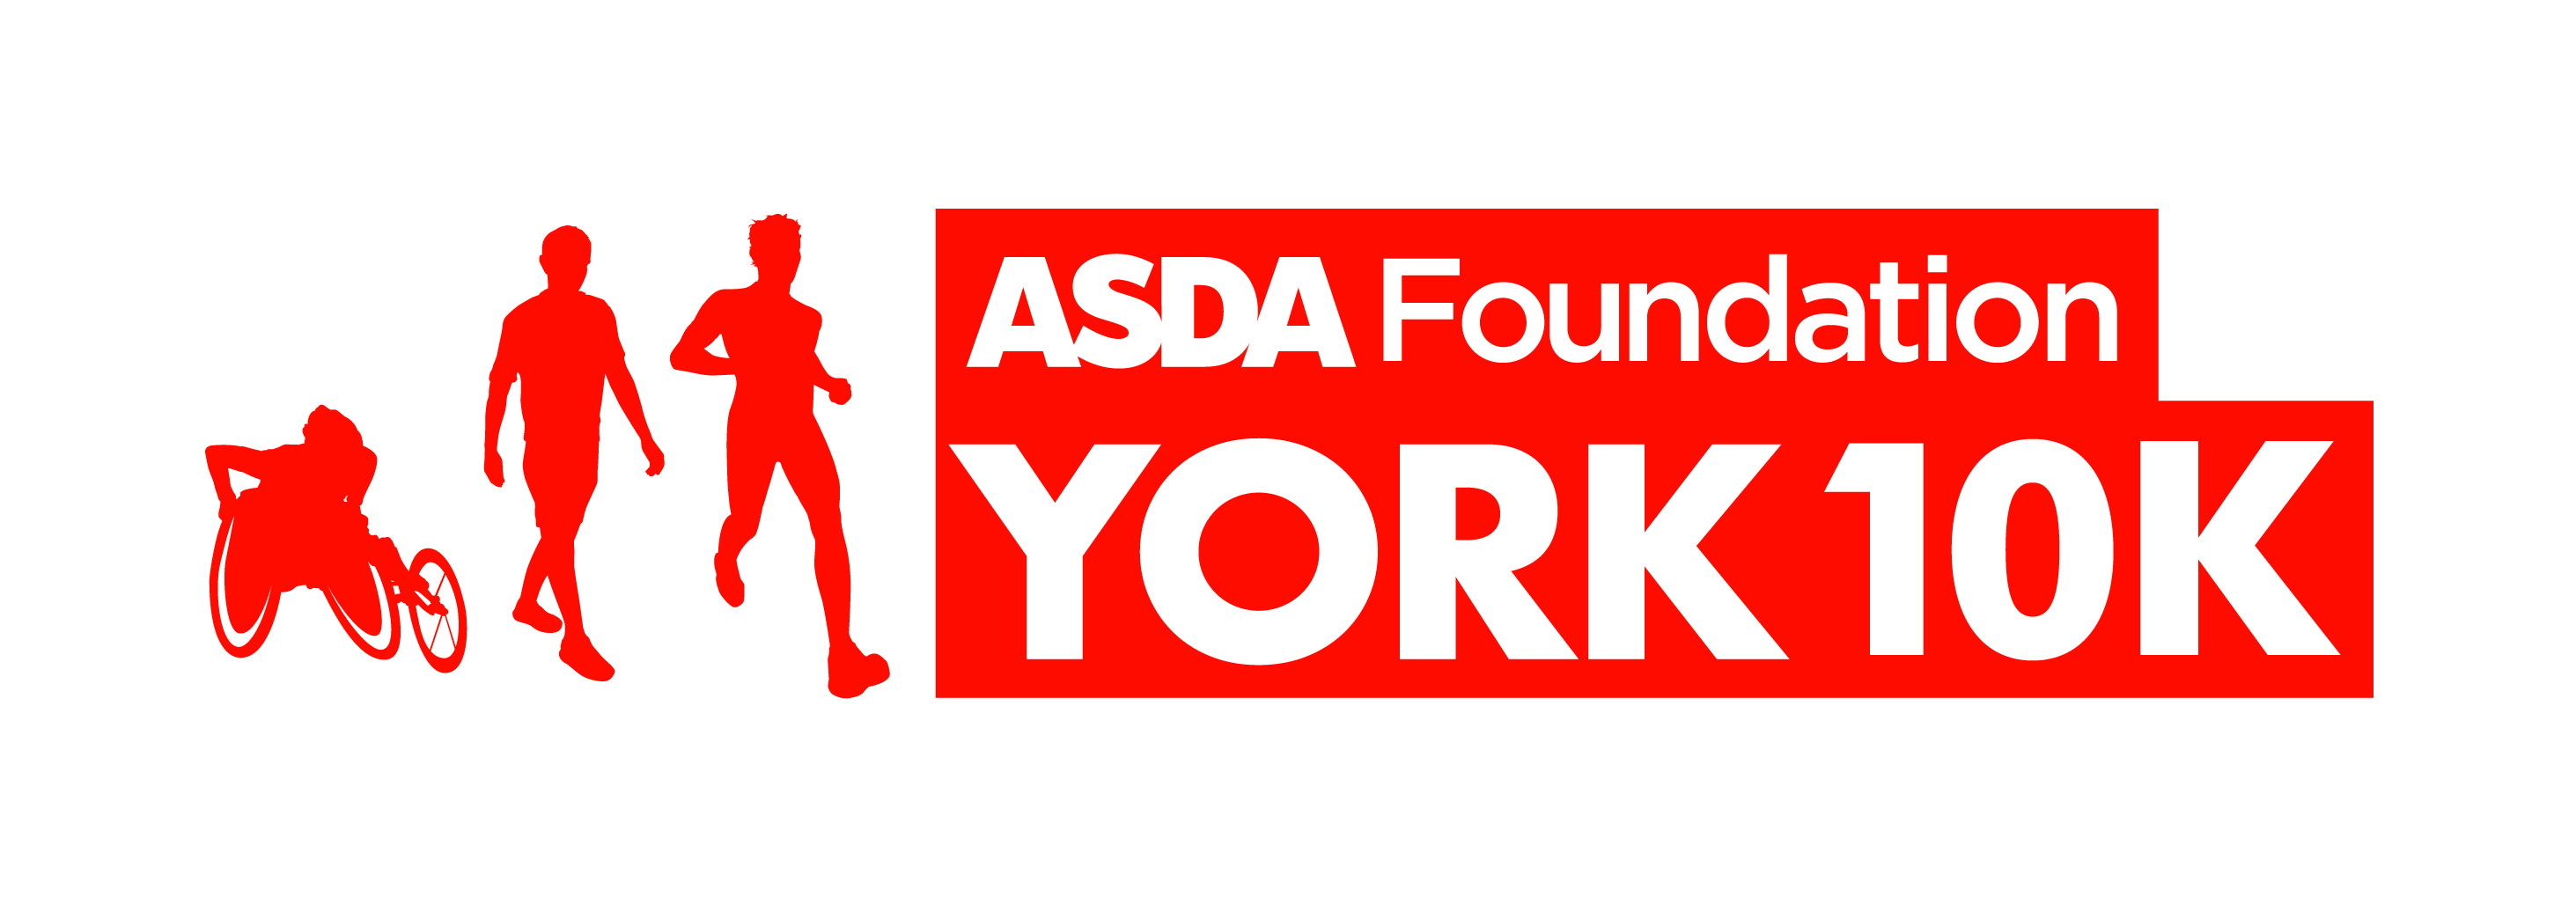 ASDA Foundation York 10K - cover image